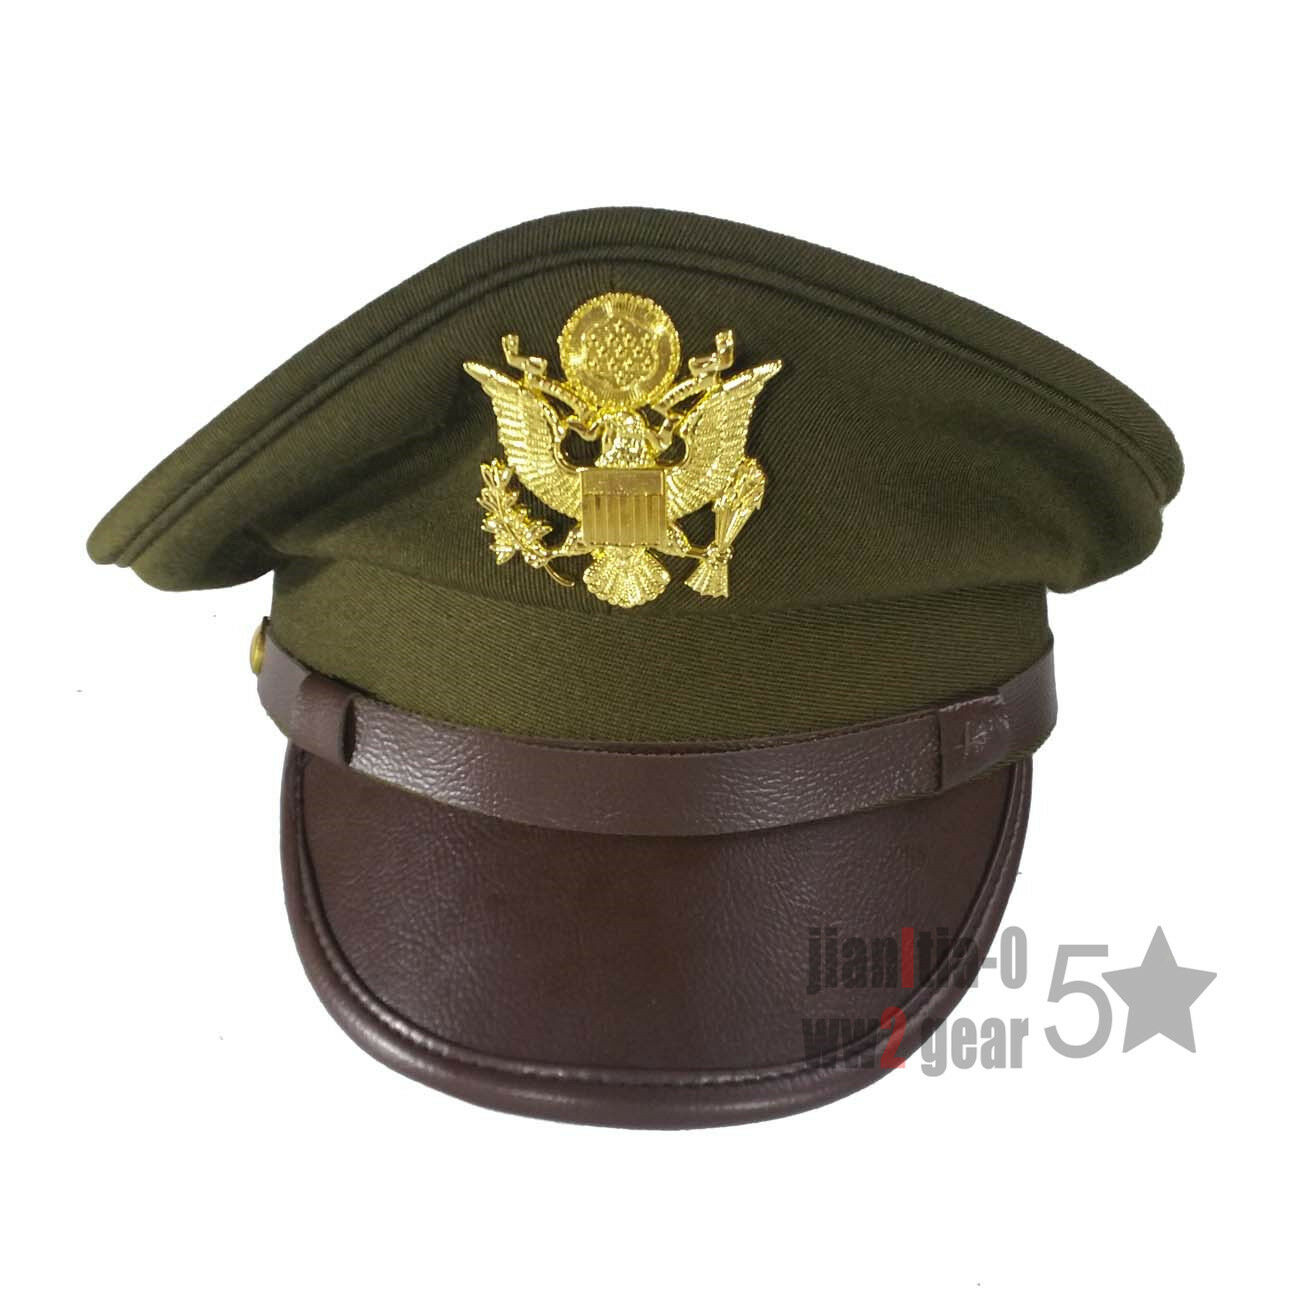 e777cb8c2fe Details about WW2 WWII US Army AirForce Officer Hat Crusher Cap Military  Gold Eagle Insignia